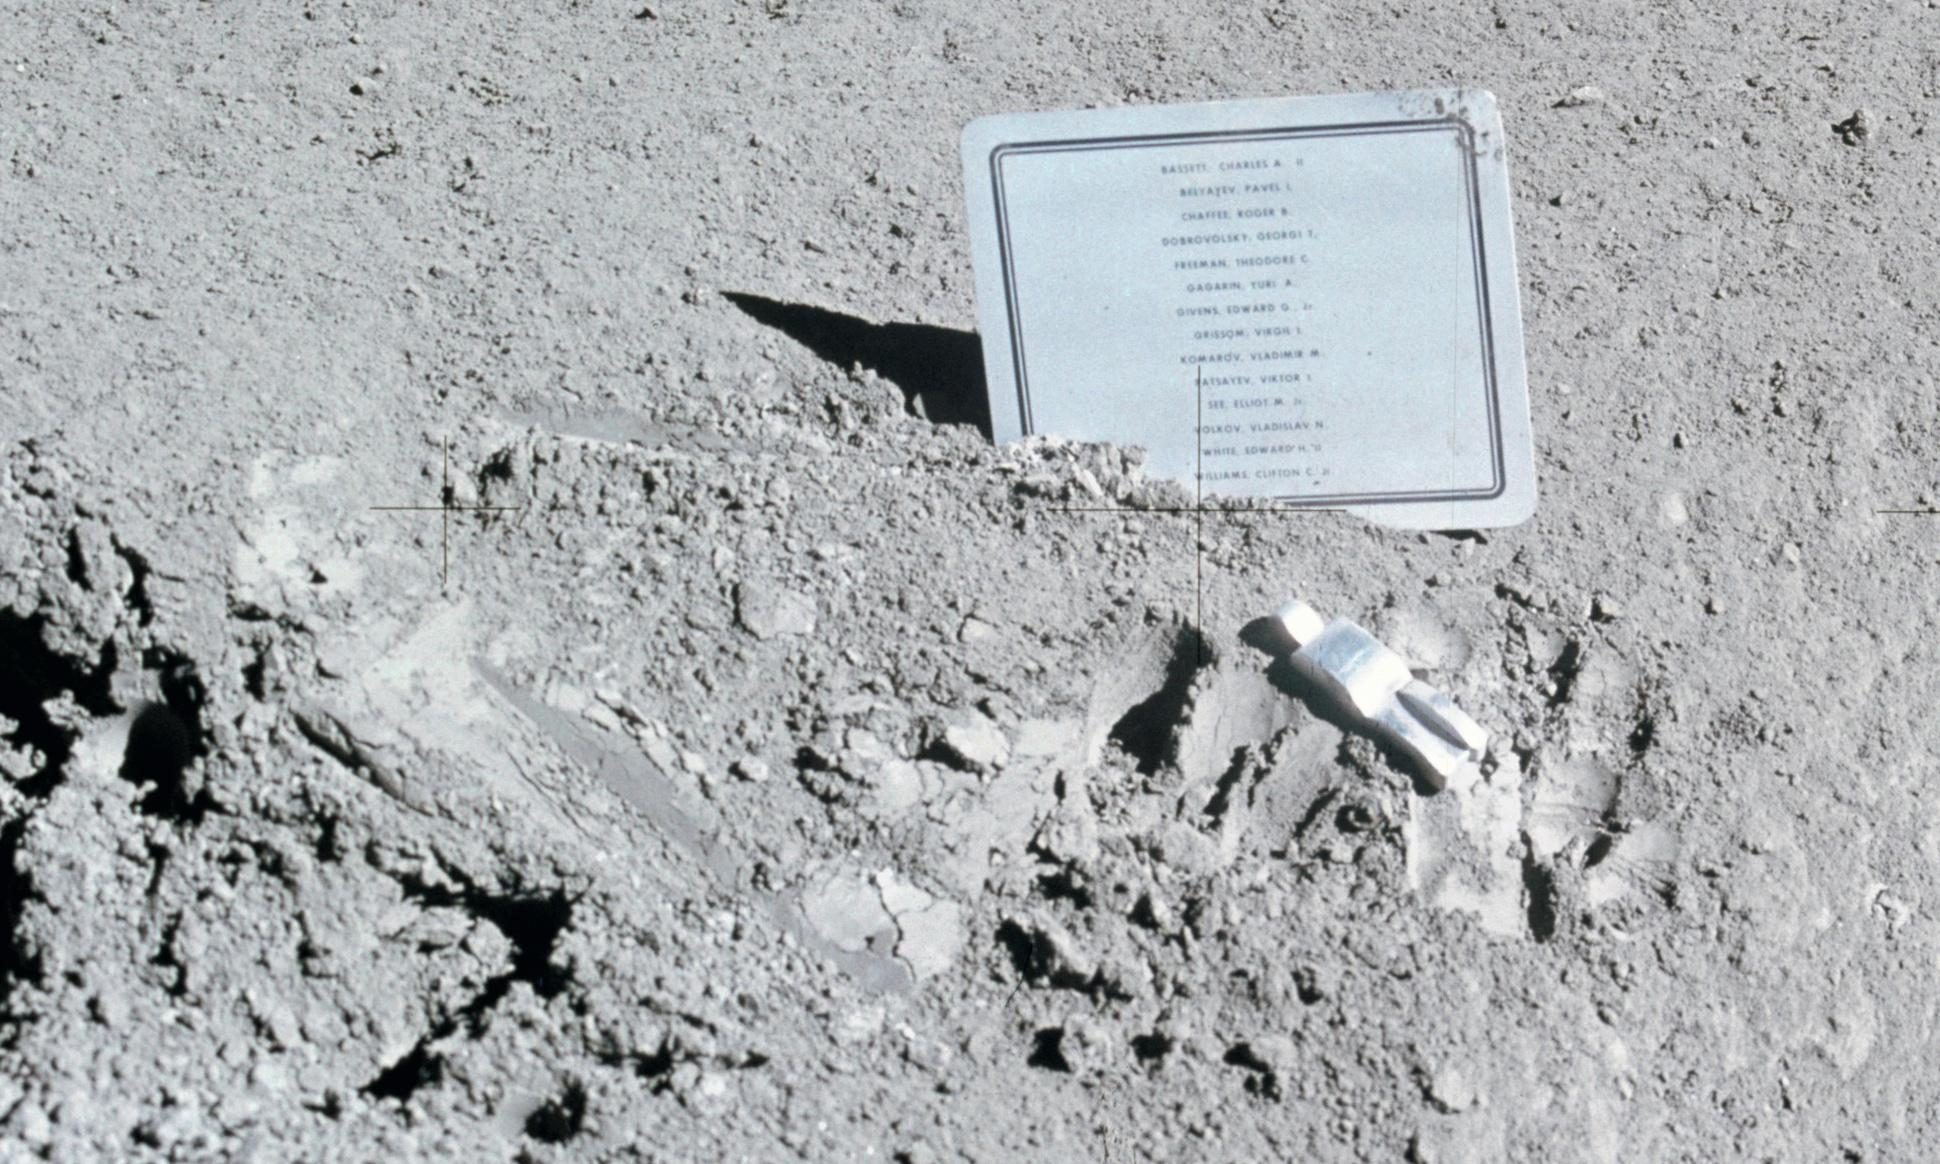 Moon buggies and bags of poo: what humans left on the moon